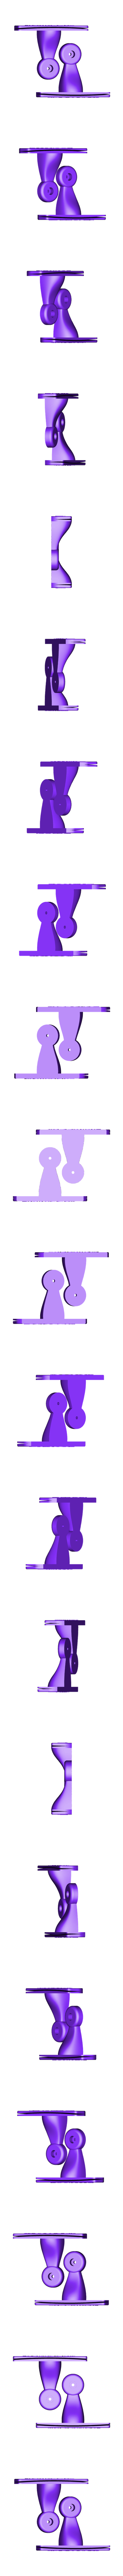 Light_reflector_stand_pair_-_3DBenchy.com.stl Download free STL file Smartphone Photo Studio for # 3DBenchy and tiny stuff • 3D print model, CreativeTools